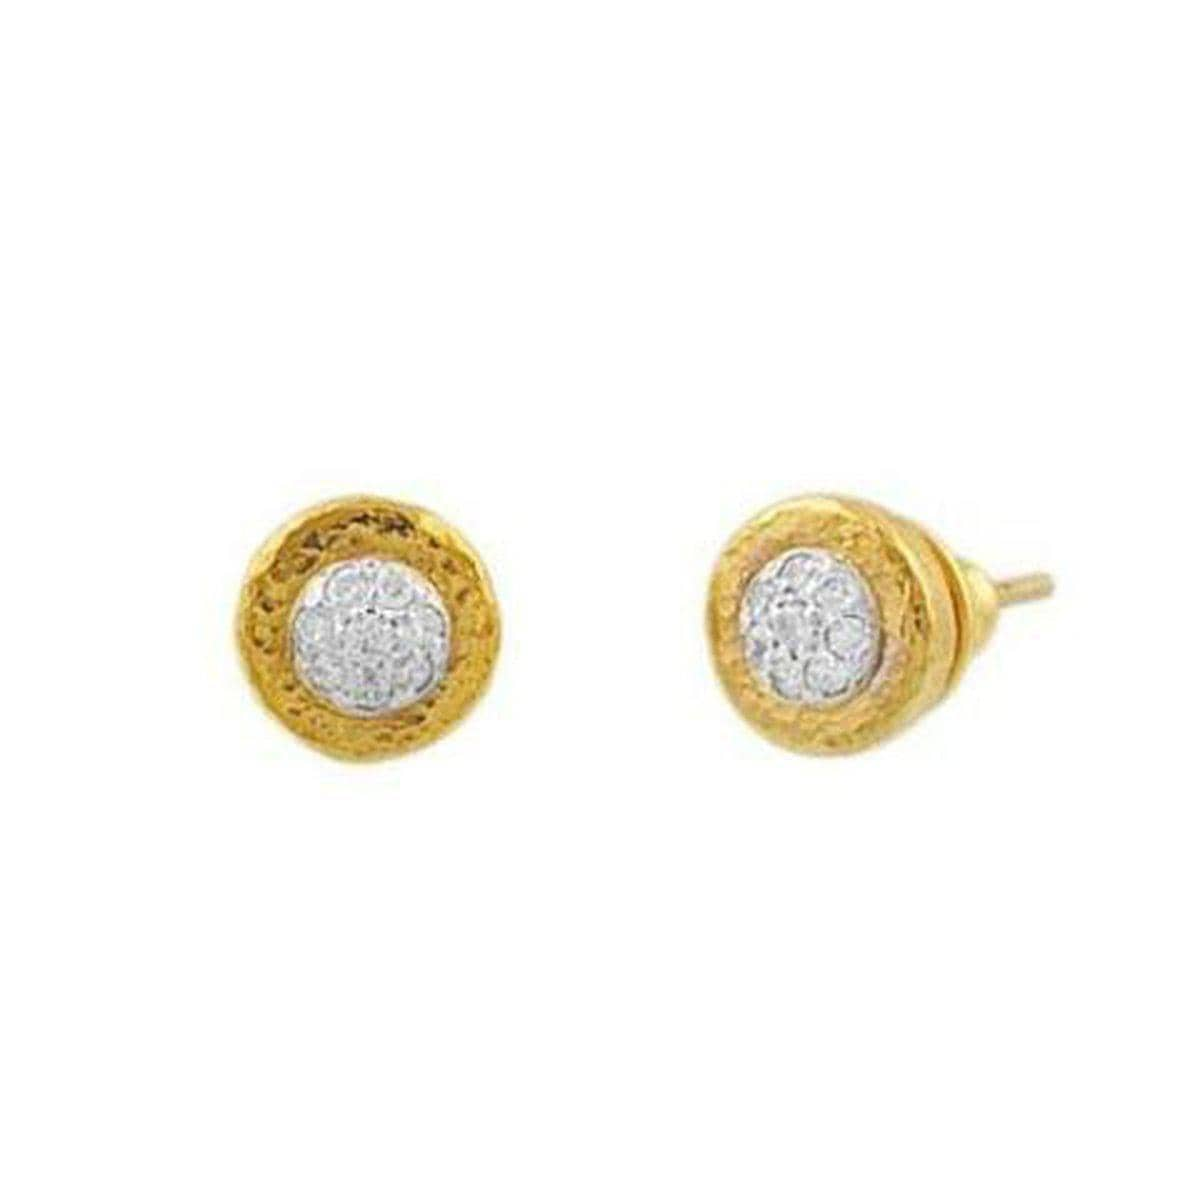 Delicate 24K Gold White Diamond Earrings - E-DRPVDI-GF-GURHAN-Renee Taylor Gallery